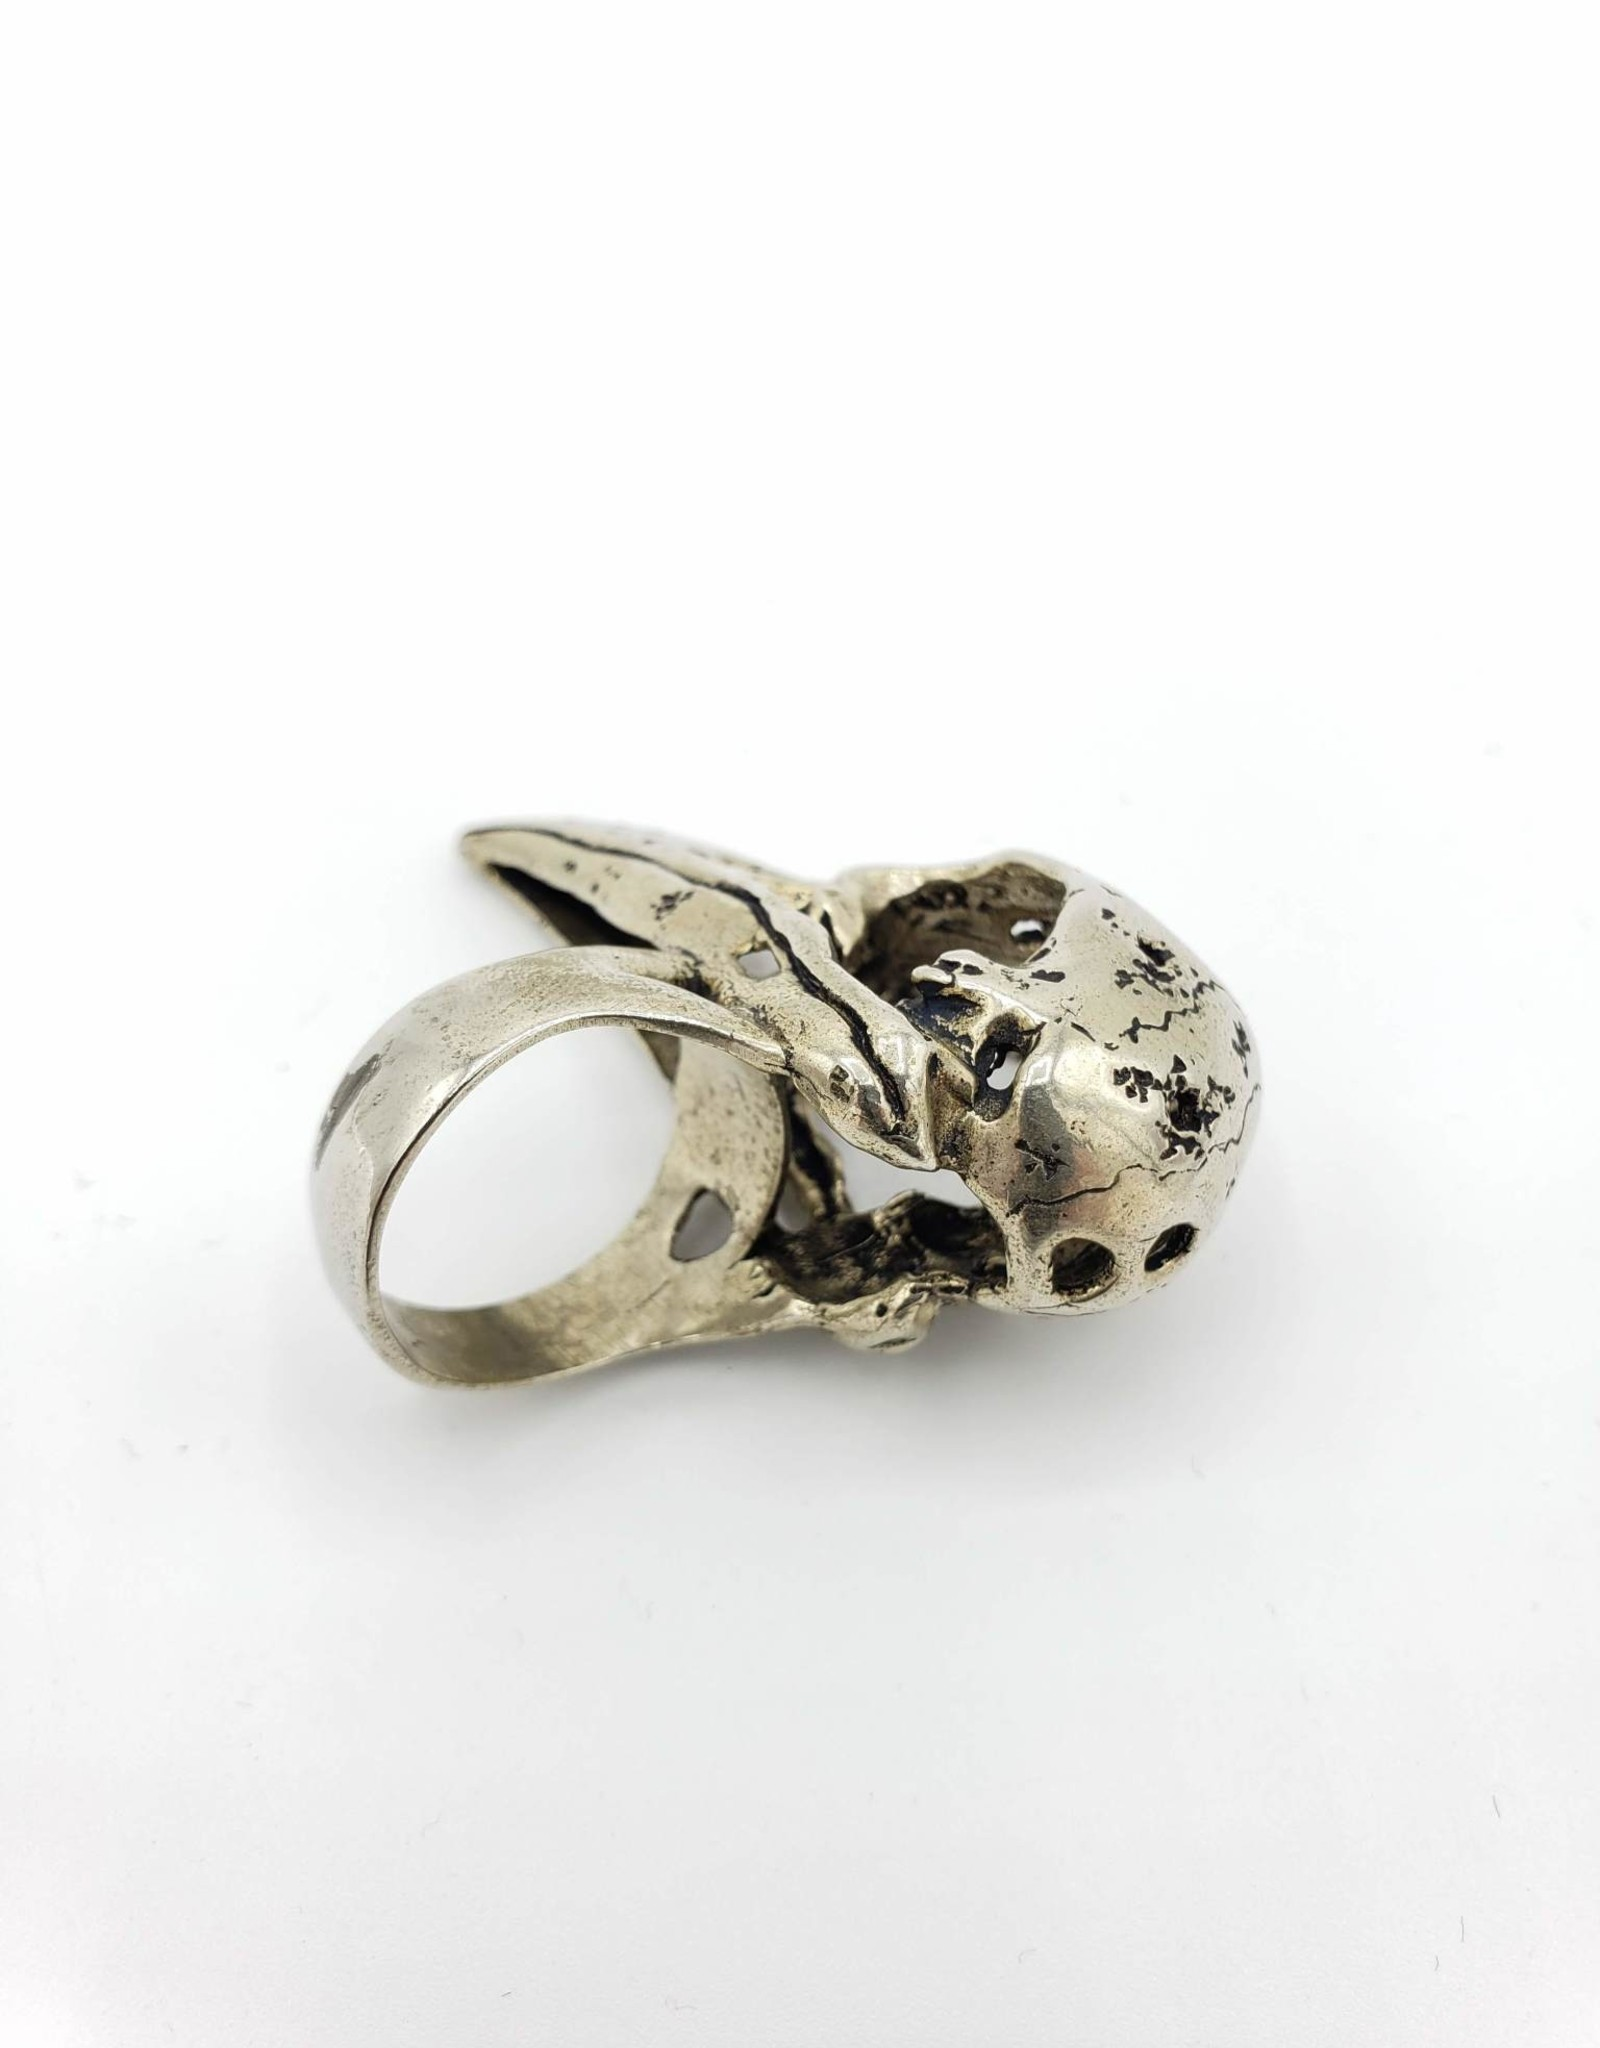 LAS Collective Crow Skull Ring - Sz. 9.5, White Bronze - Polished